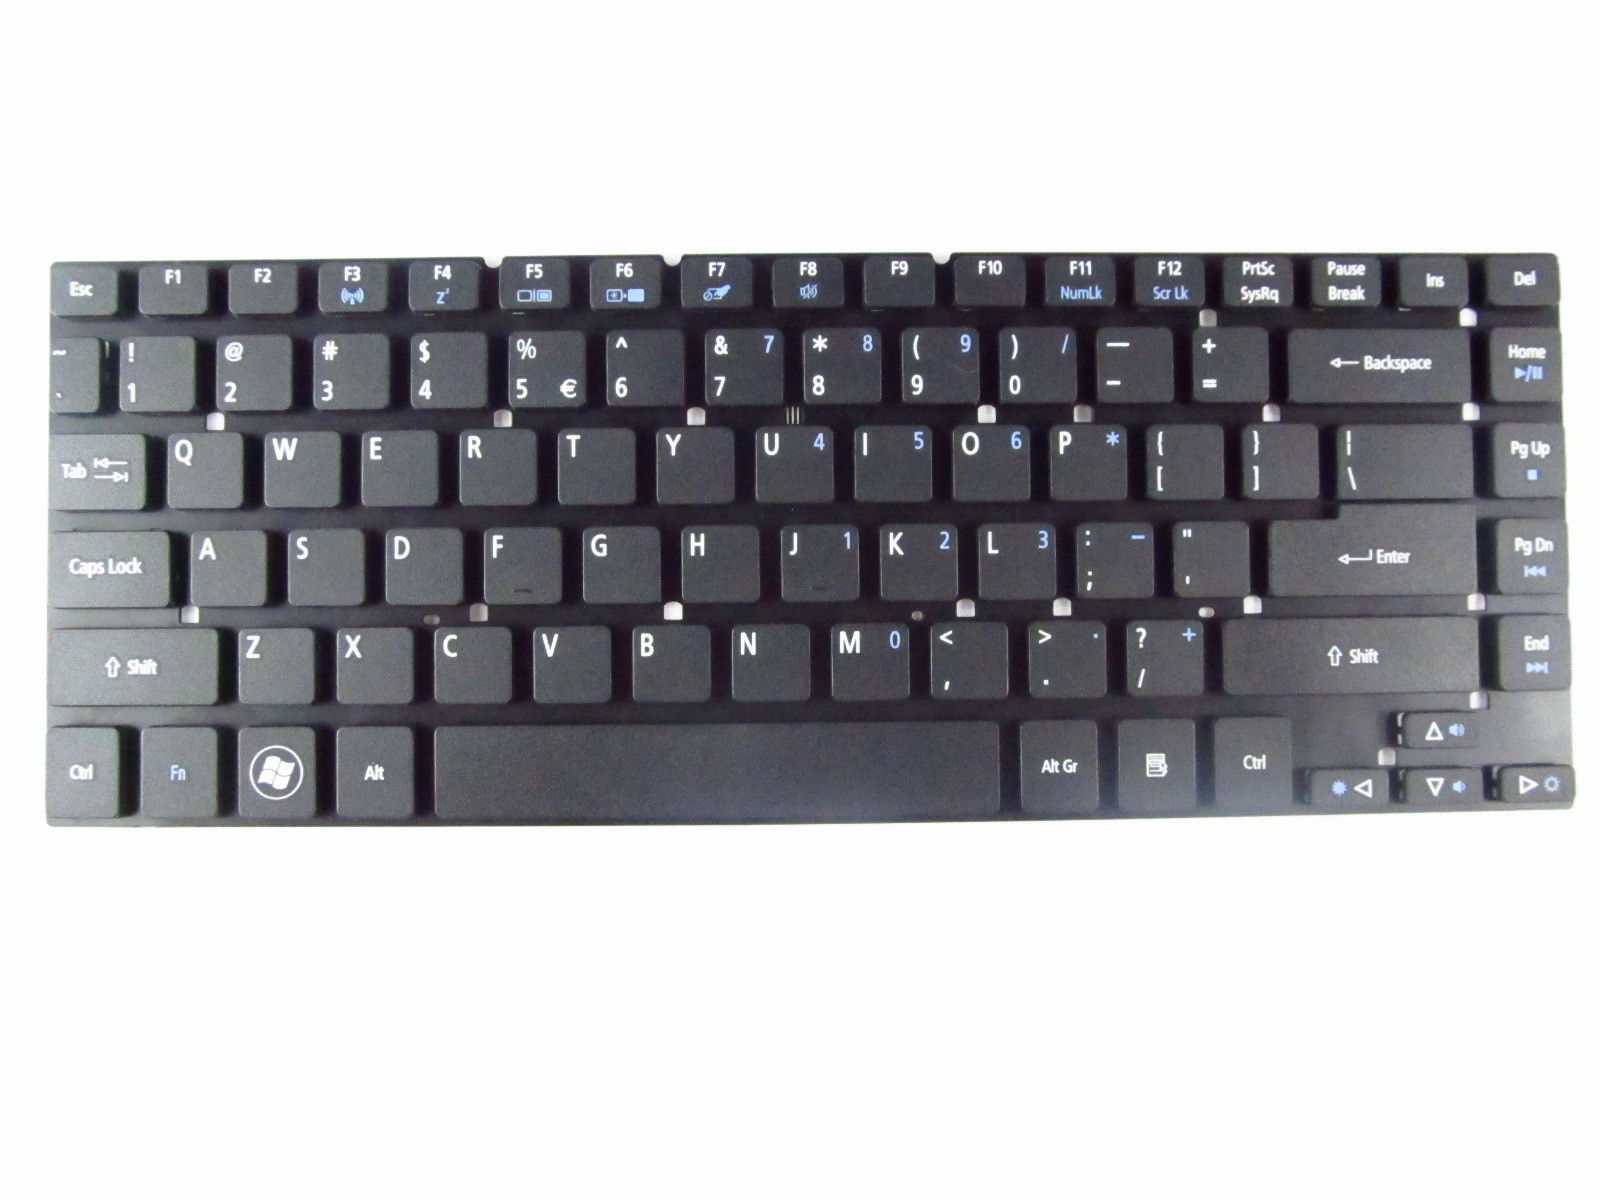 New Genuine for <font><b>Acer</b></font> <font><b>Aspire</b></font> <font><b>4830</b></font> 4830G 4830T <font><b>4830TG</b></font> Laptop Keyboard image